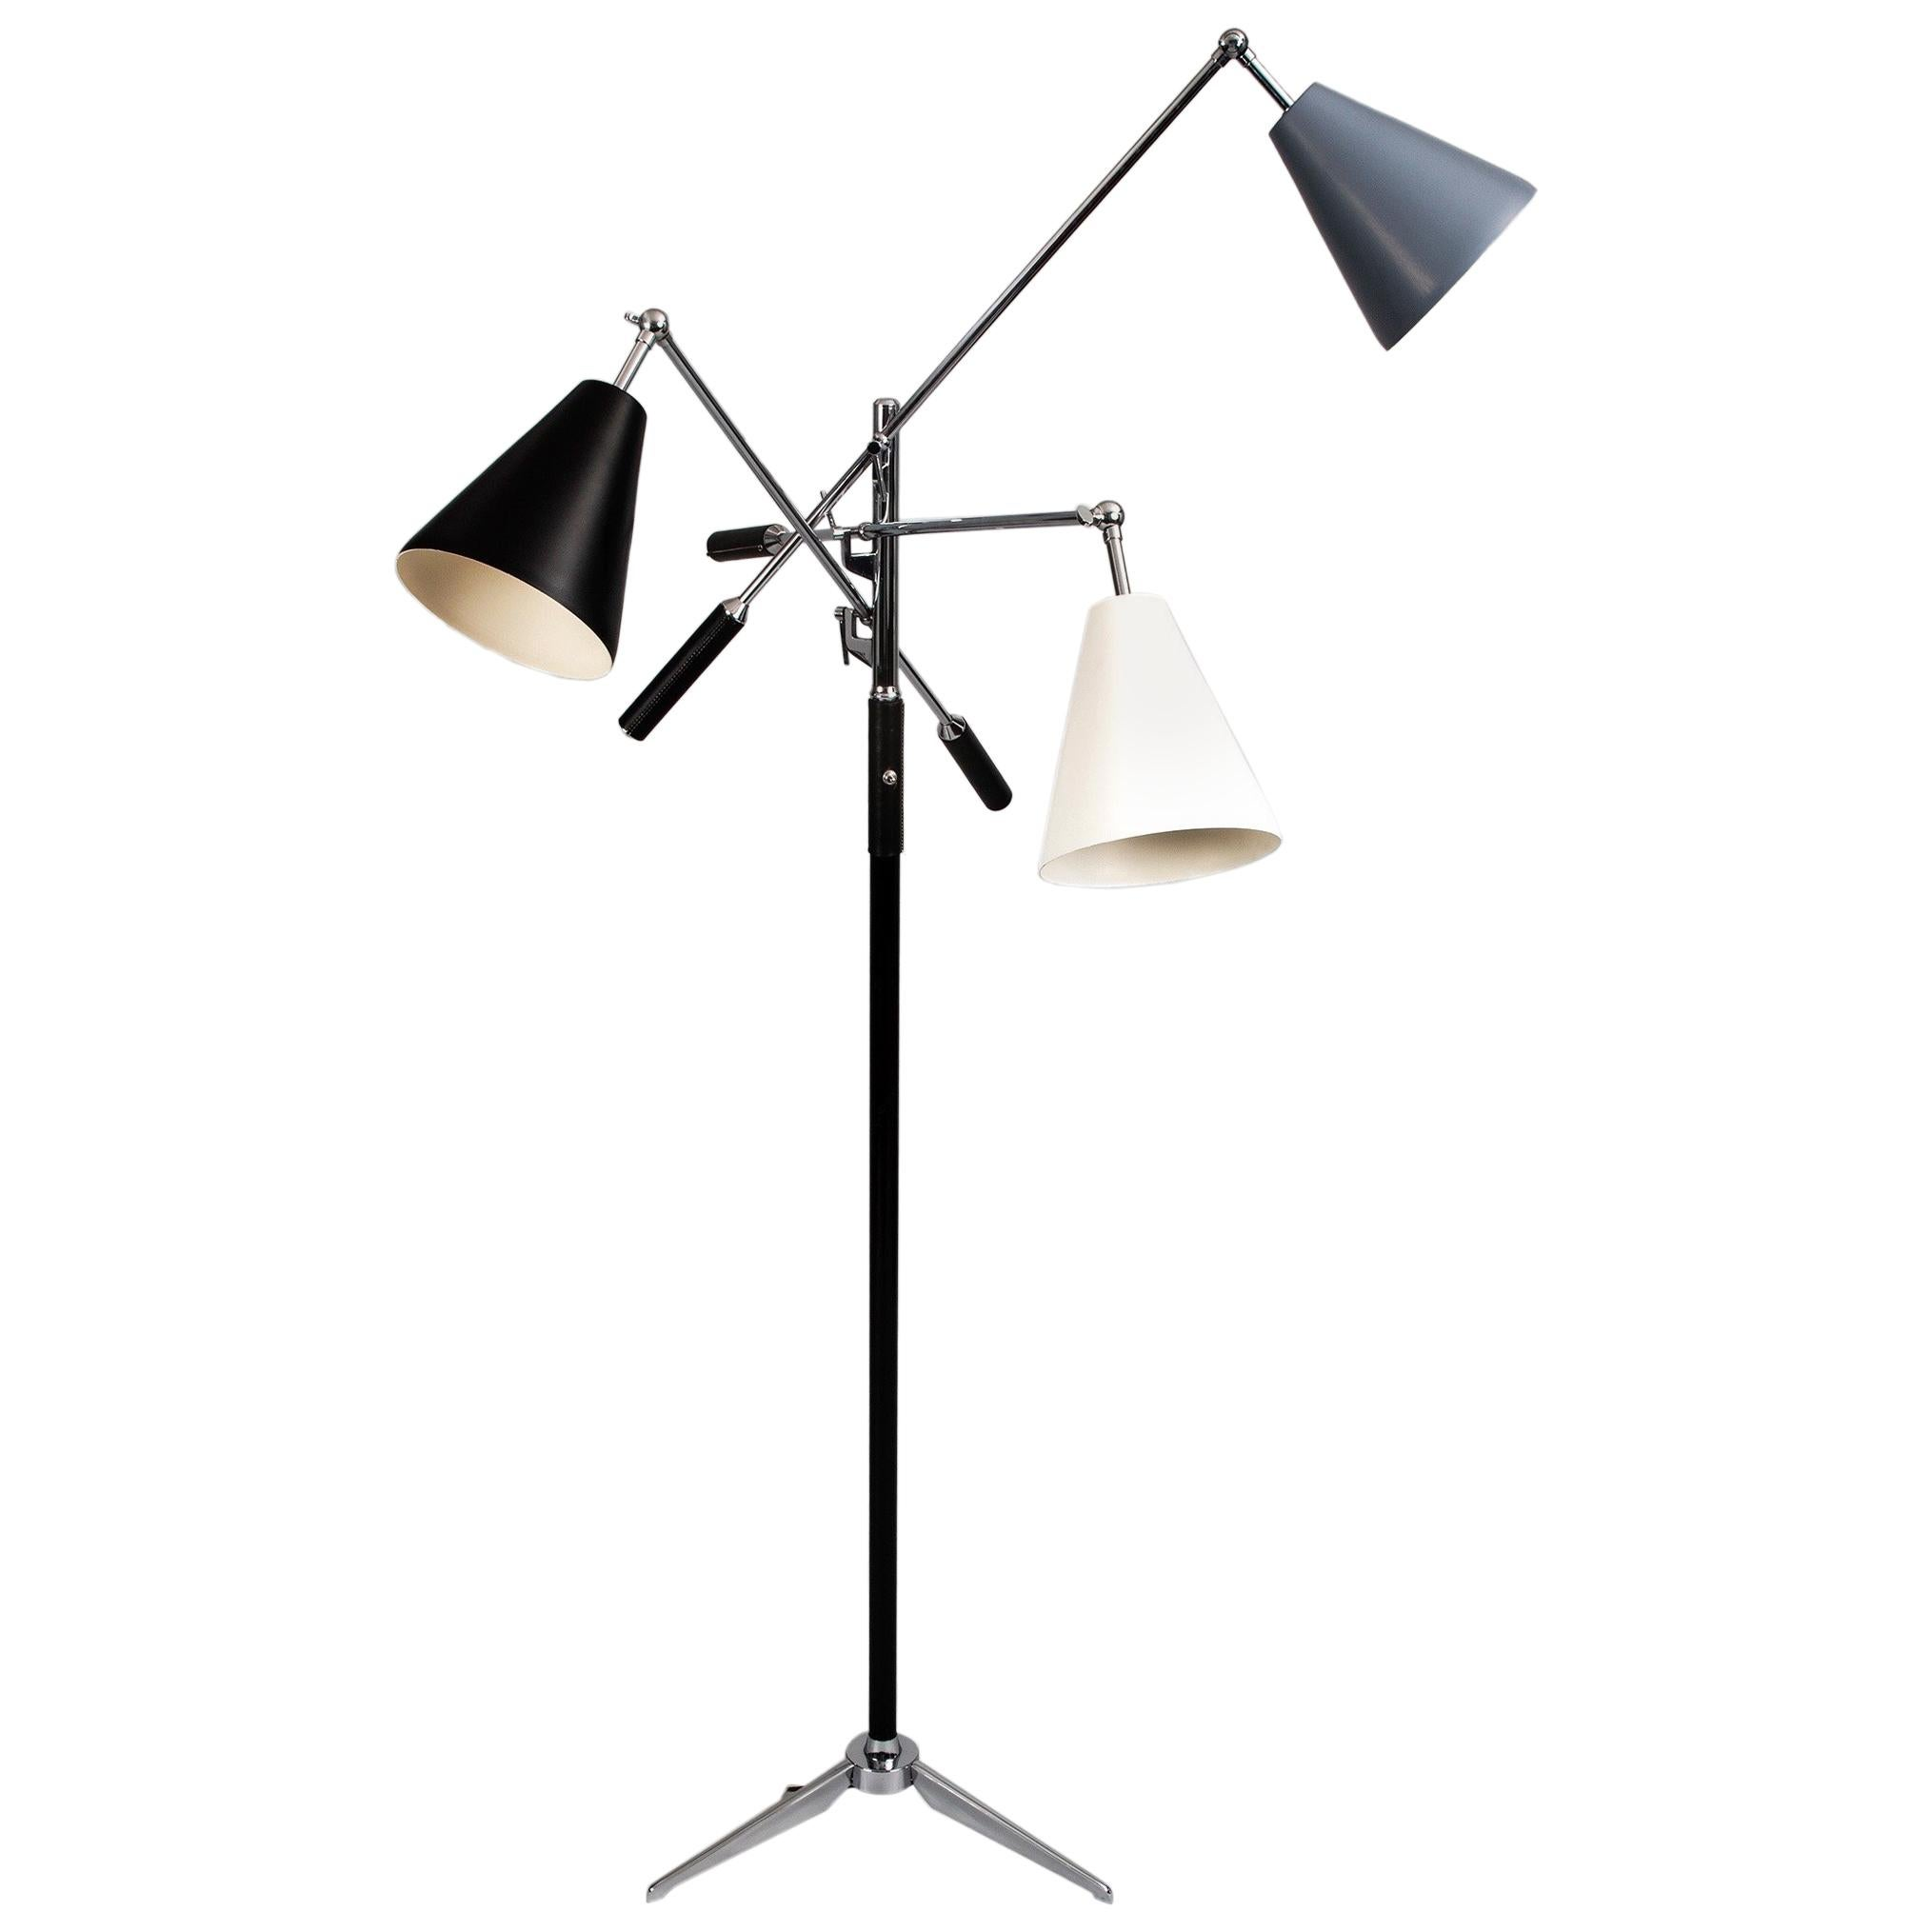 Triennale Floor Lamp in the Style of Angelo Lelii for Arredoluce, Italy 1950's